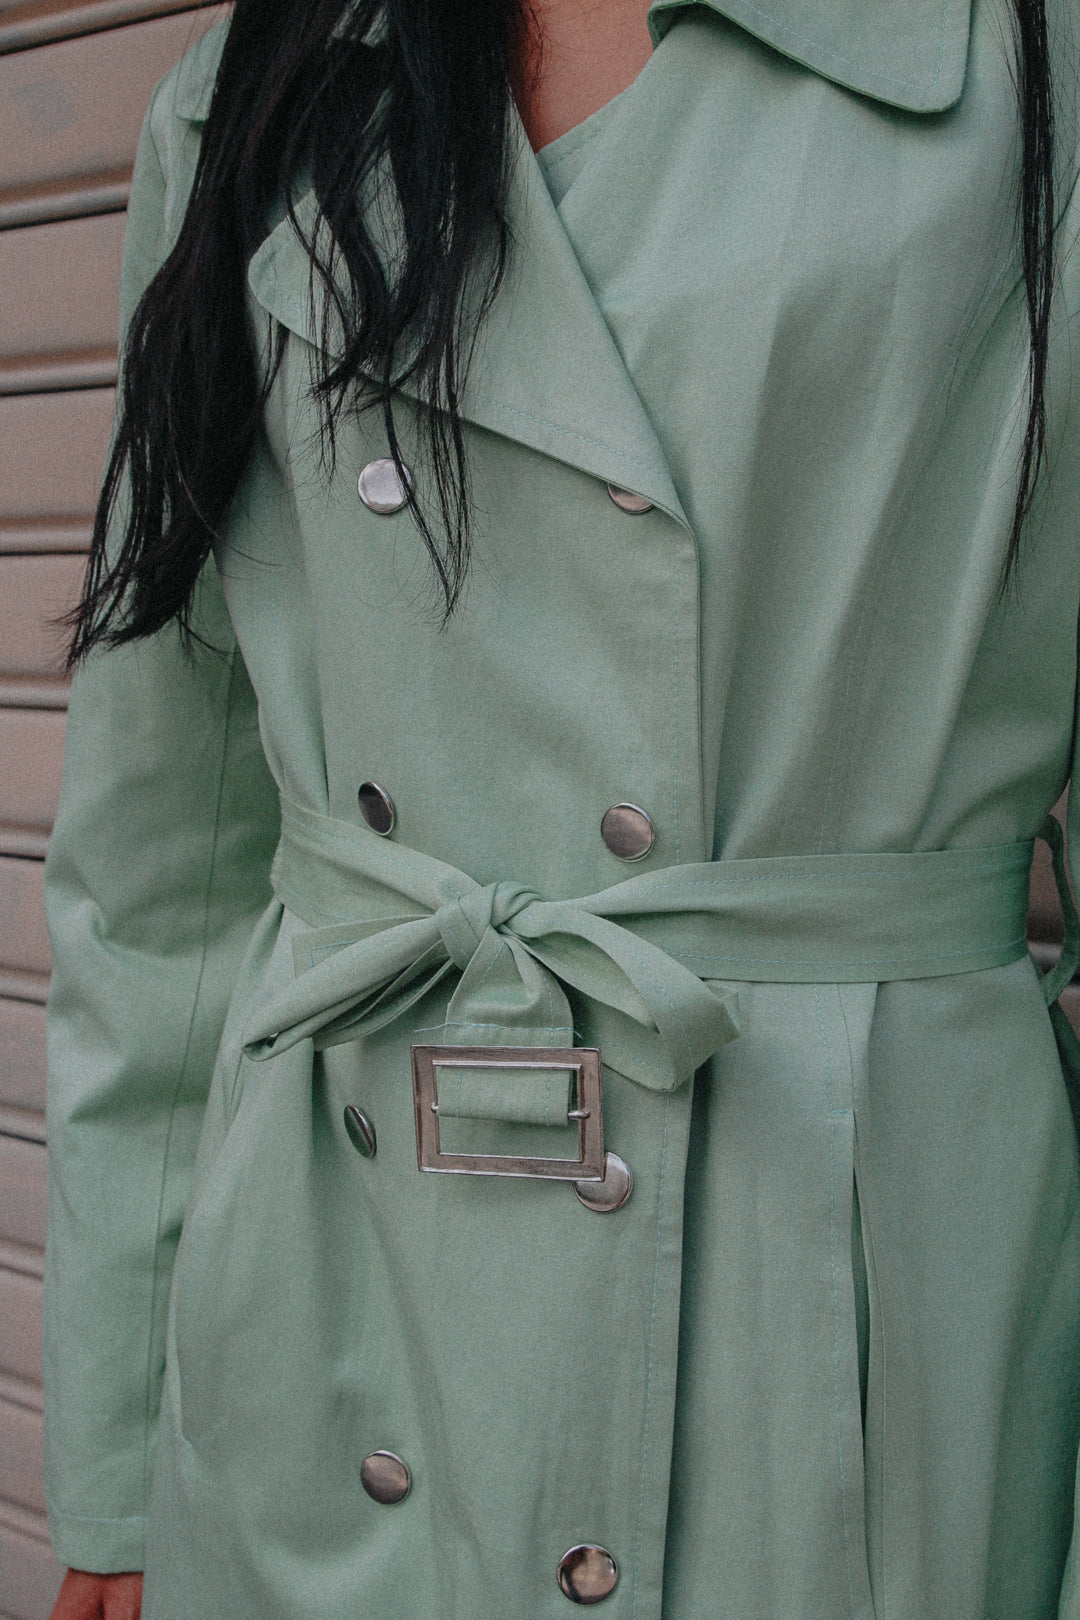 PARIS - Pistache Trench